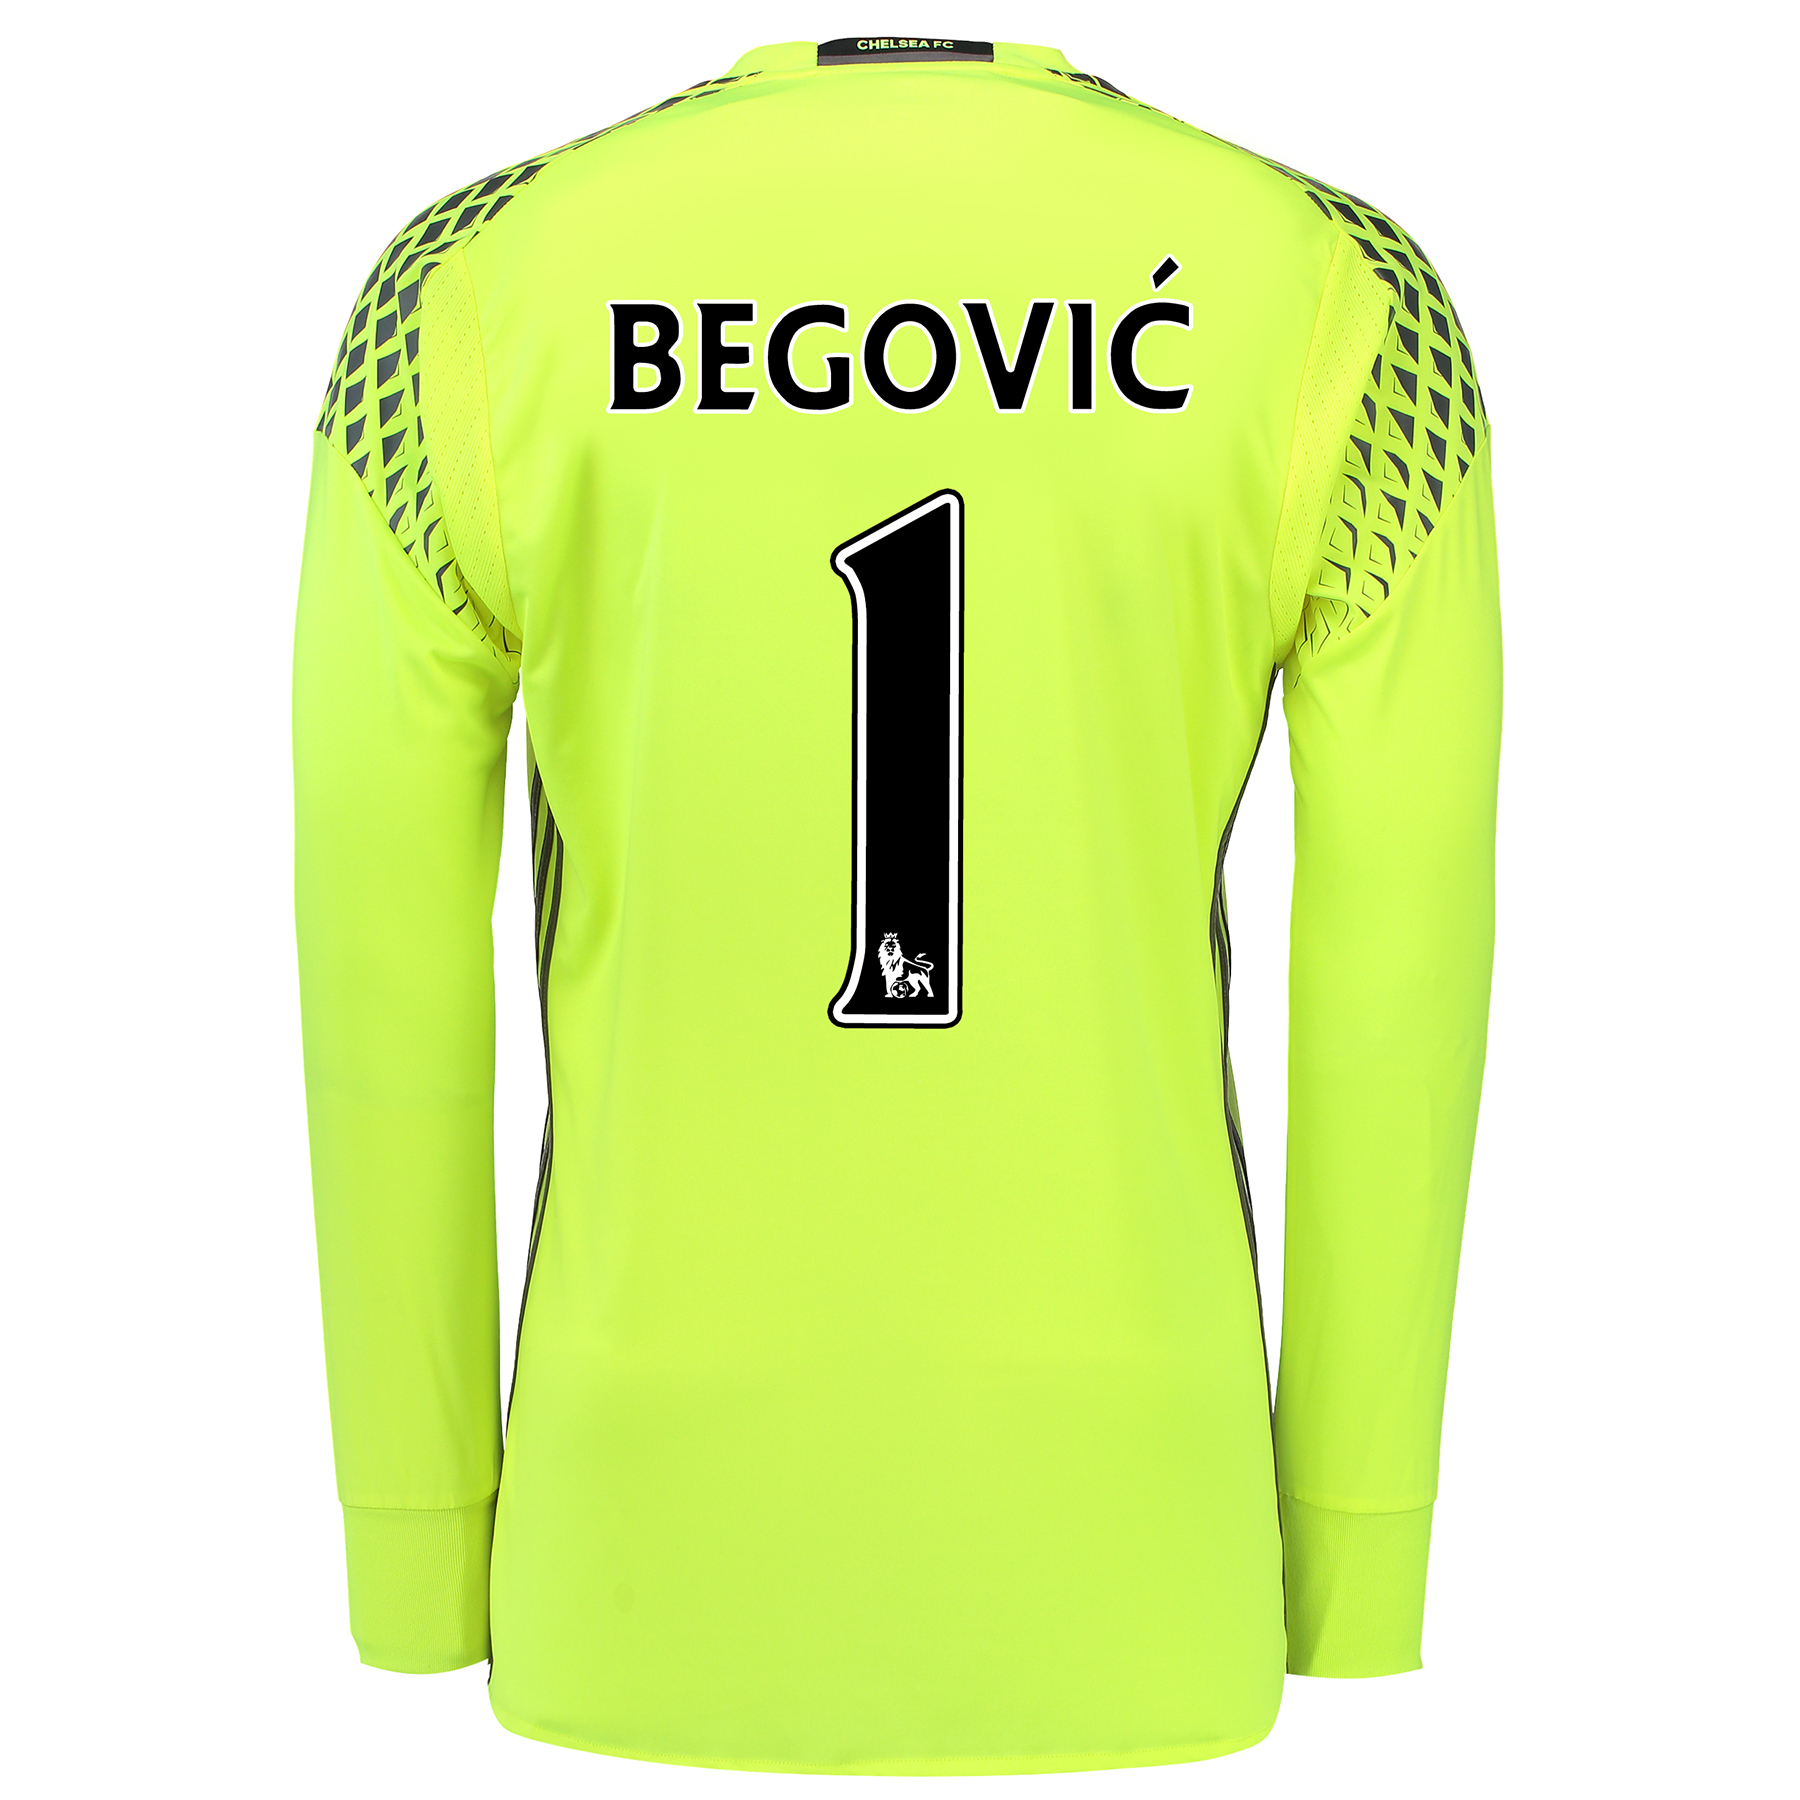 Shop Begovic Printed Shirts